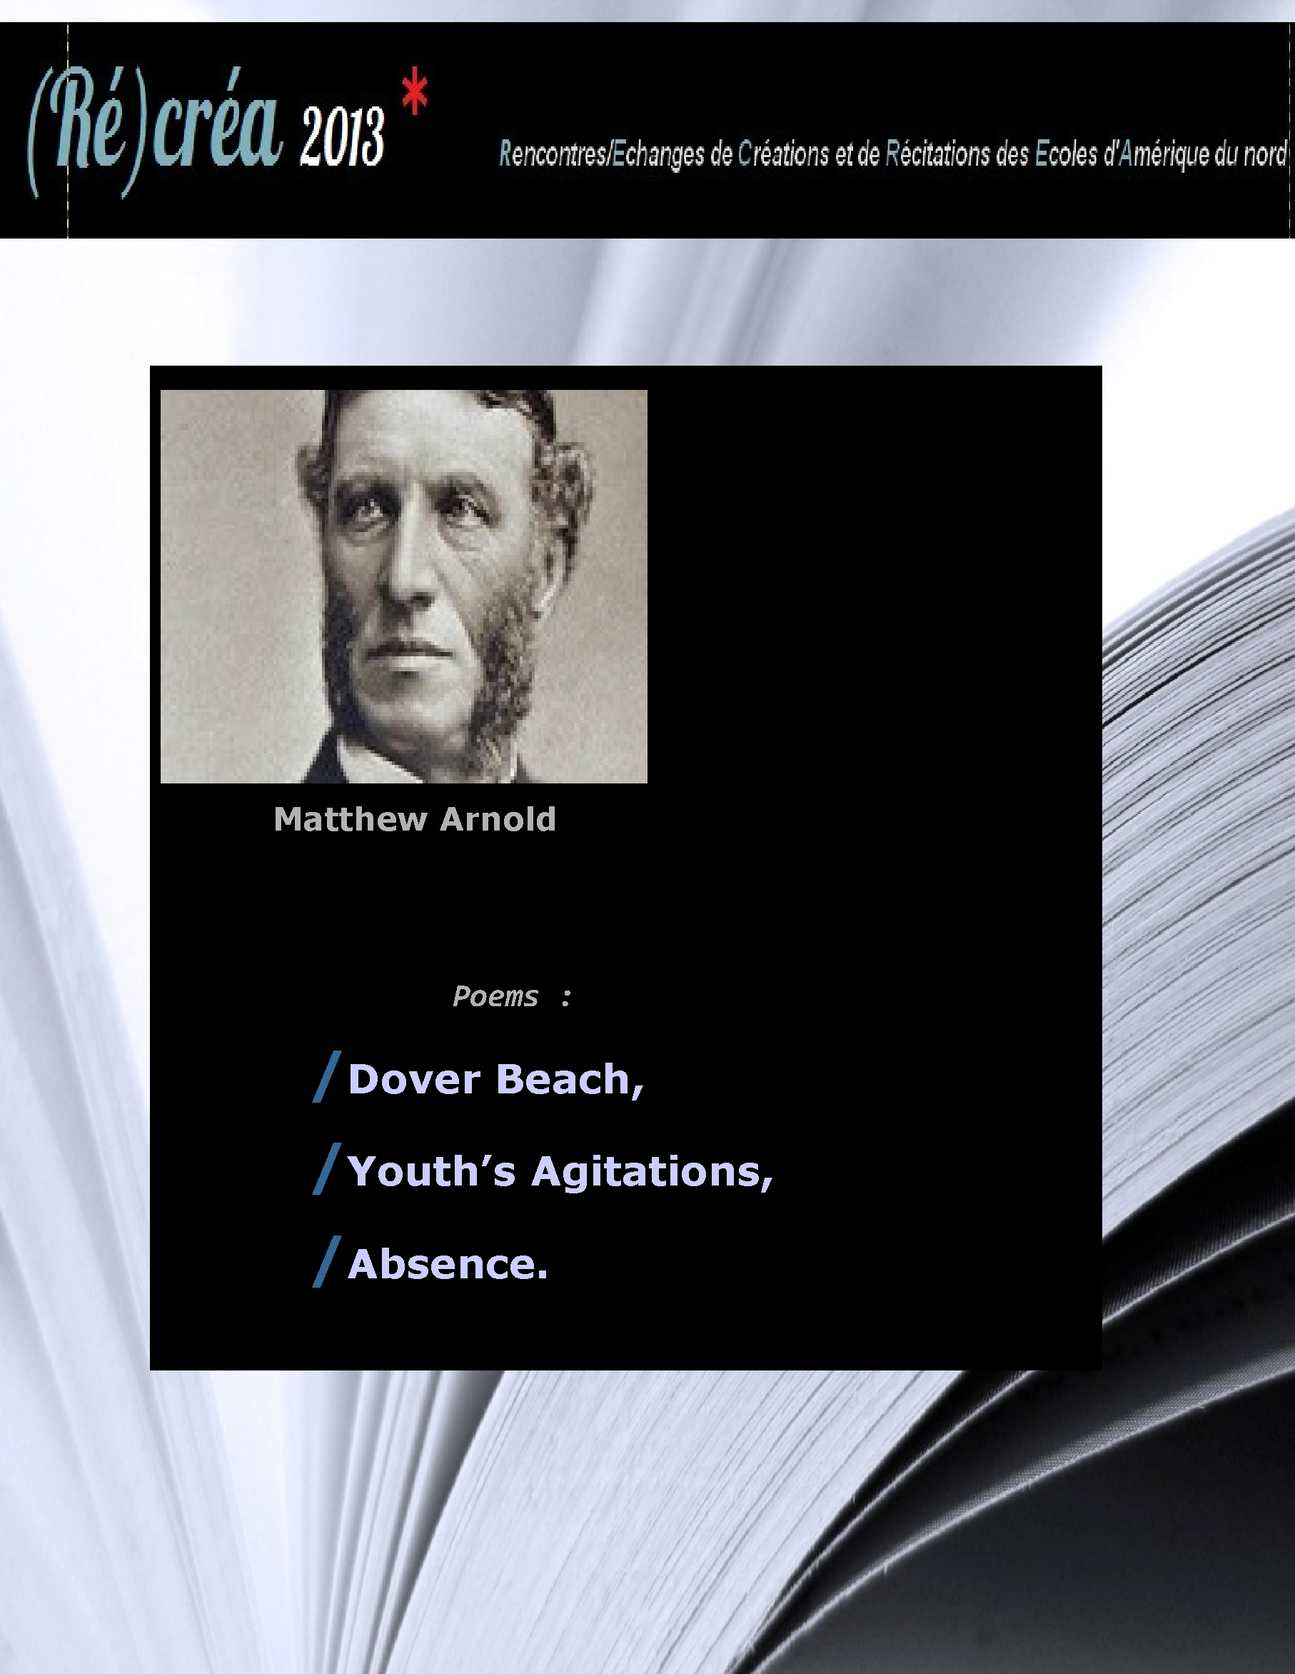 an examination of dover beach by matthew arnold English poem - dover beach by matthew arnold matthew arnold dover beach poem animation - duration: 2:19 poetryreincarnations 5,315 views 2:19.